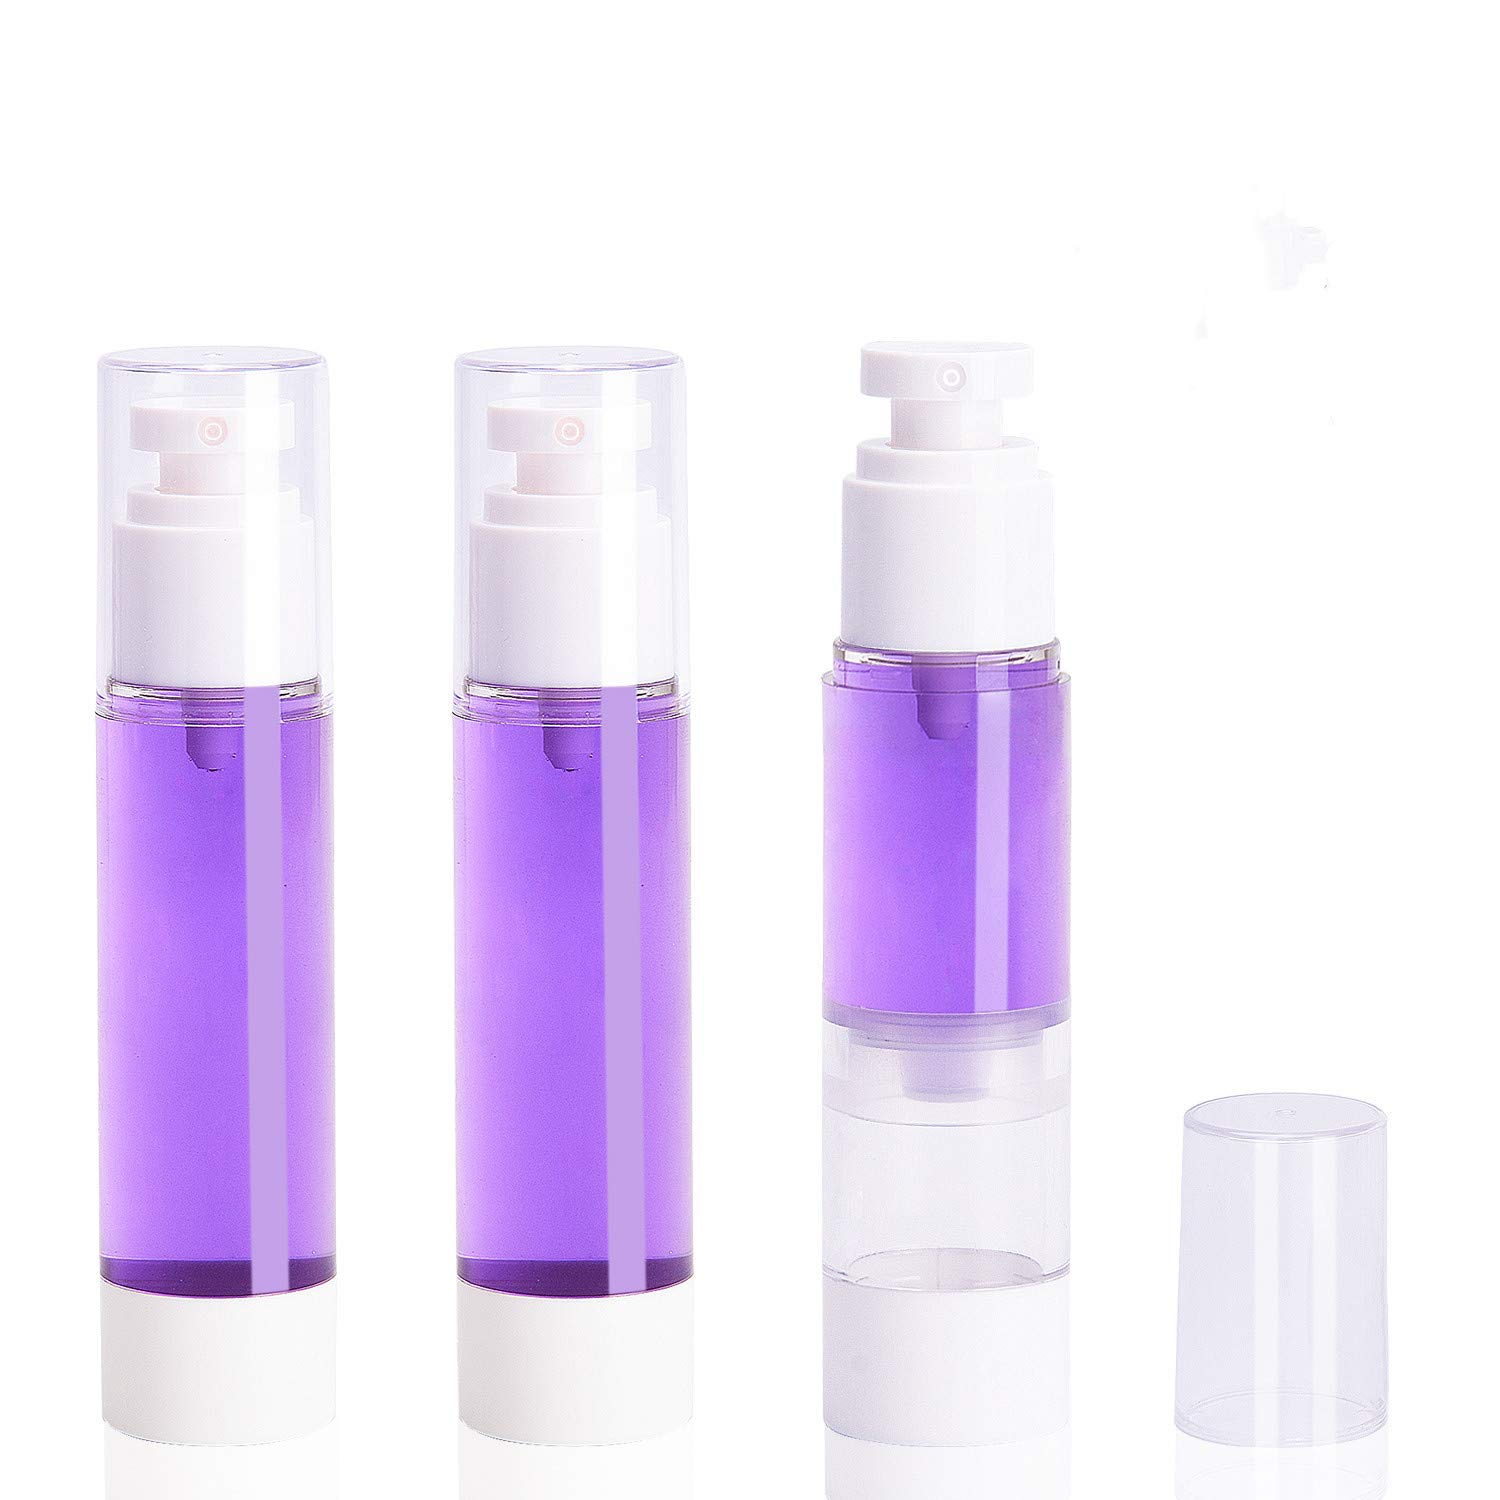 3 Pack Airless Vacuum Face Mist Spray Bottle, 50ml/1.7oz Ultra Fine Mist Water Sprayer Atomizer Aerosol, Refillable Makeup Cosmetics Toiletry Organizer Travel Containers for Lotion Toner Liquid